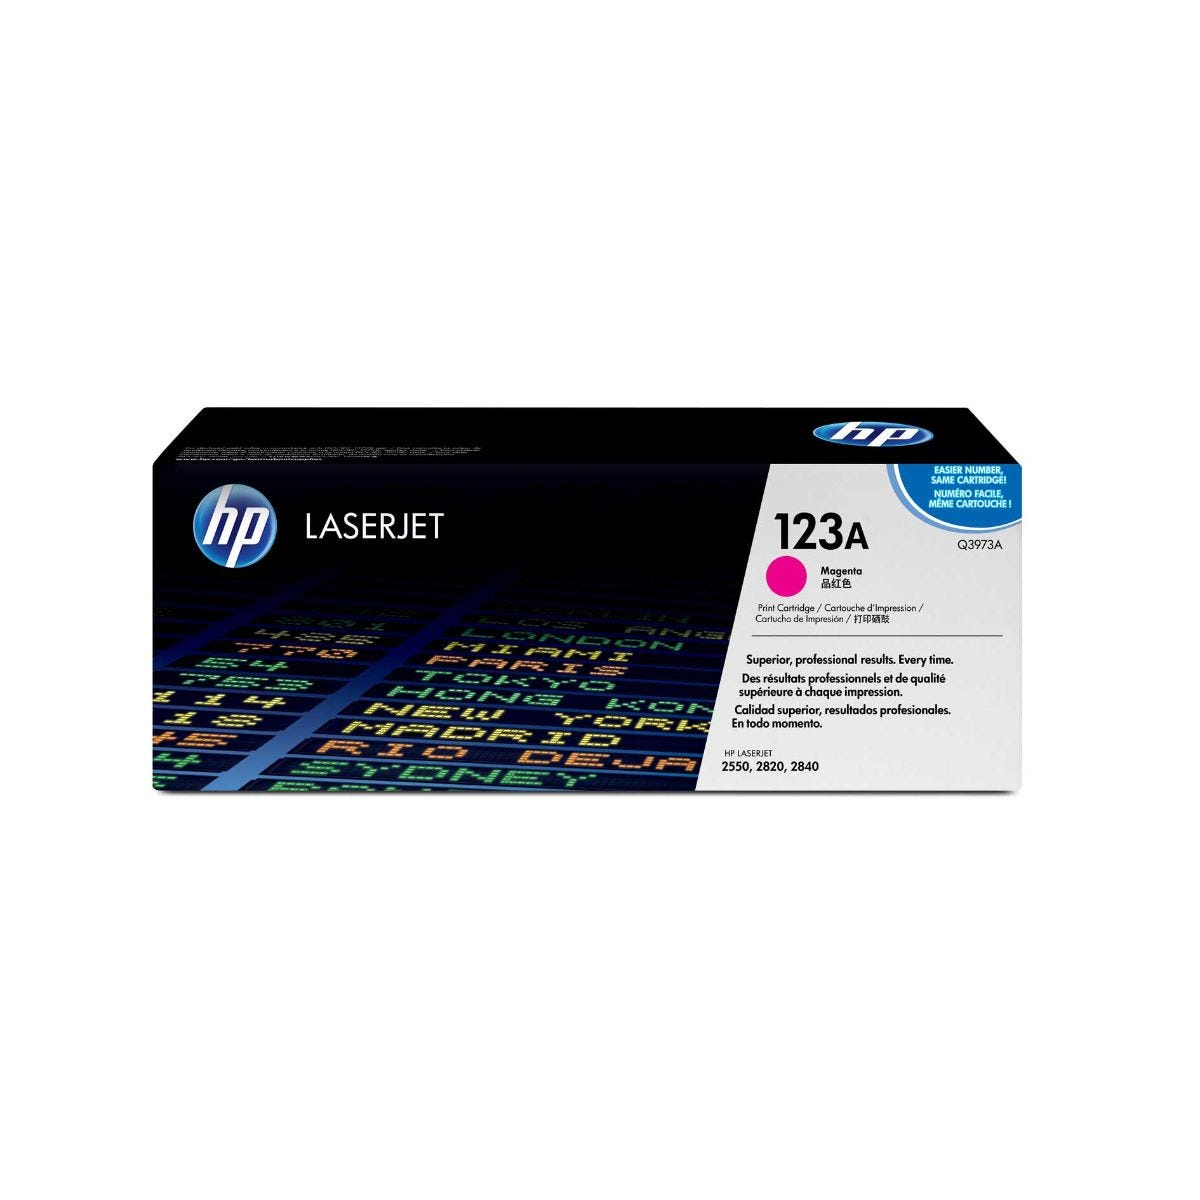 Image of HP 123A Laserjet Printer Ink Toner Cartridge Q3973A, Magenta